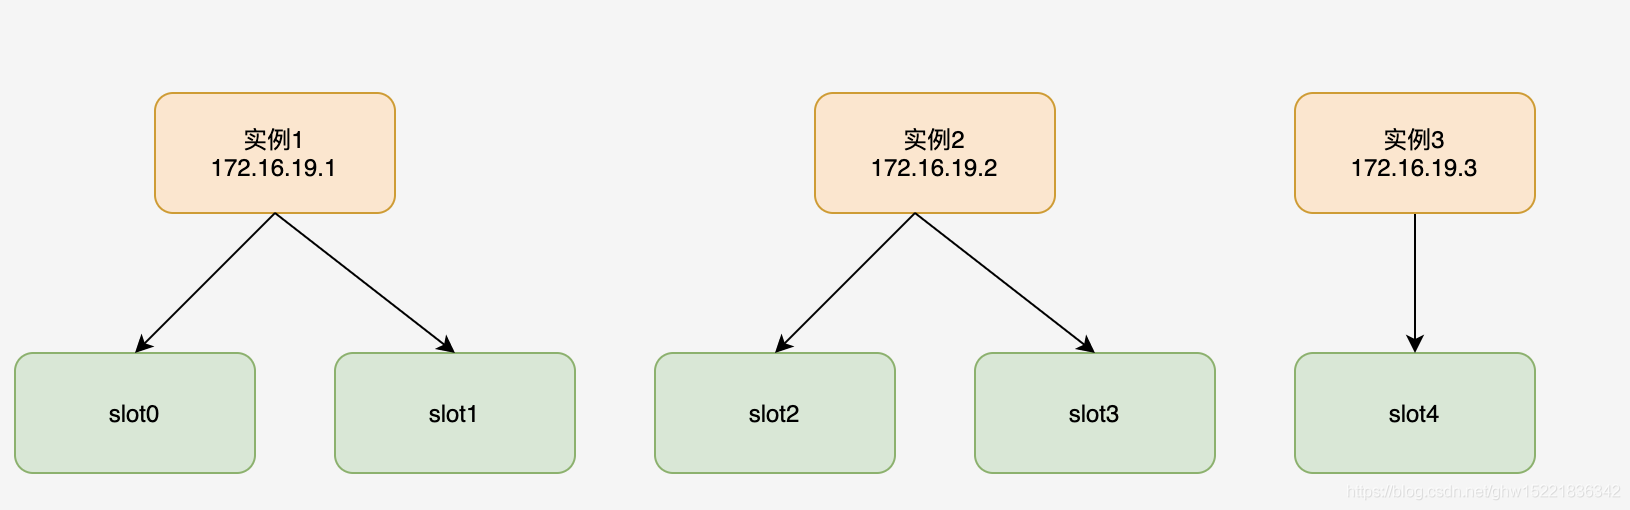 The relationship between data slices and instances